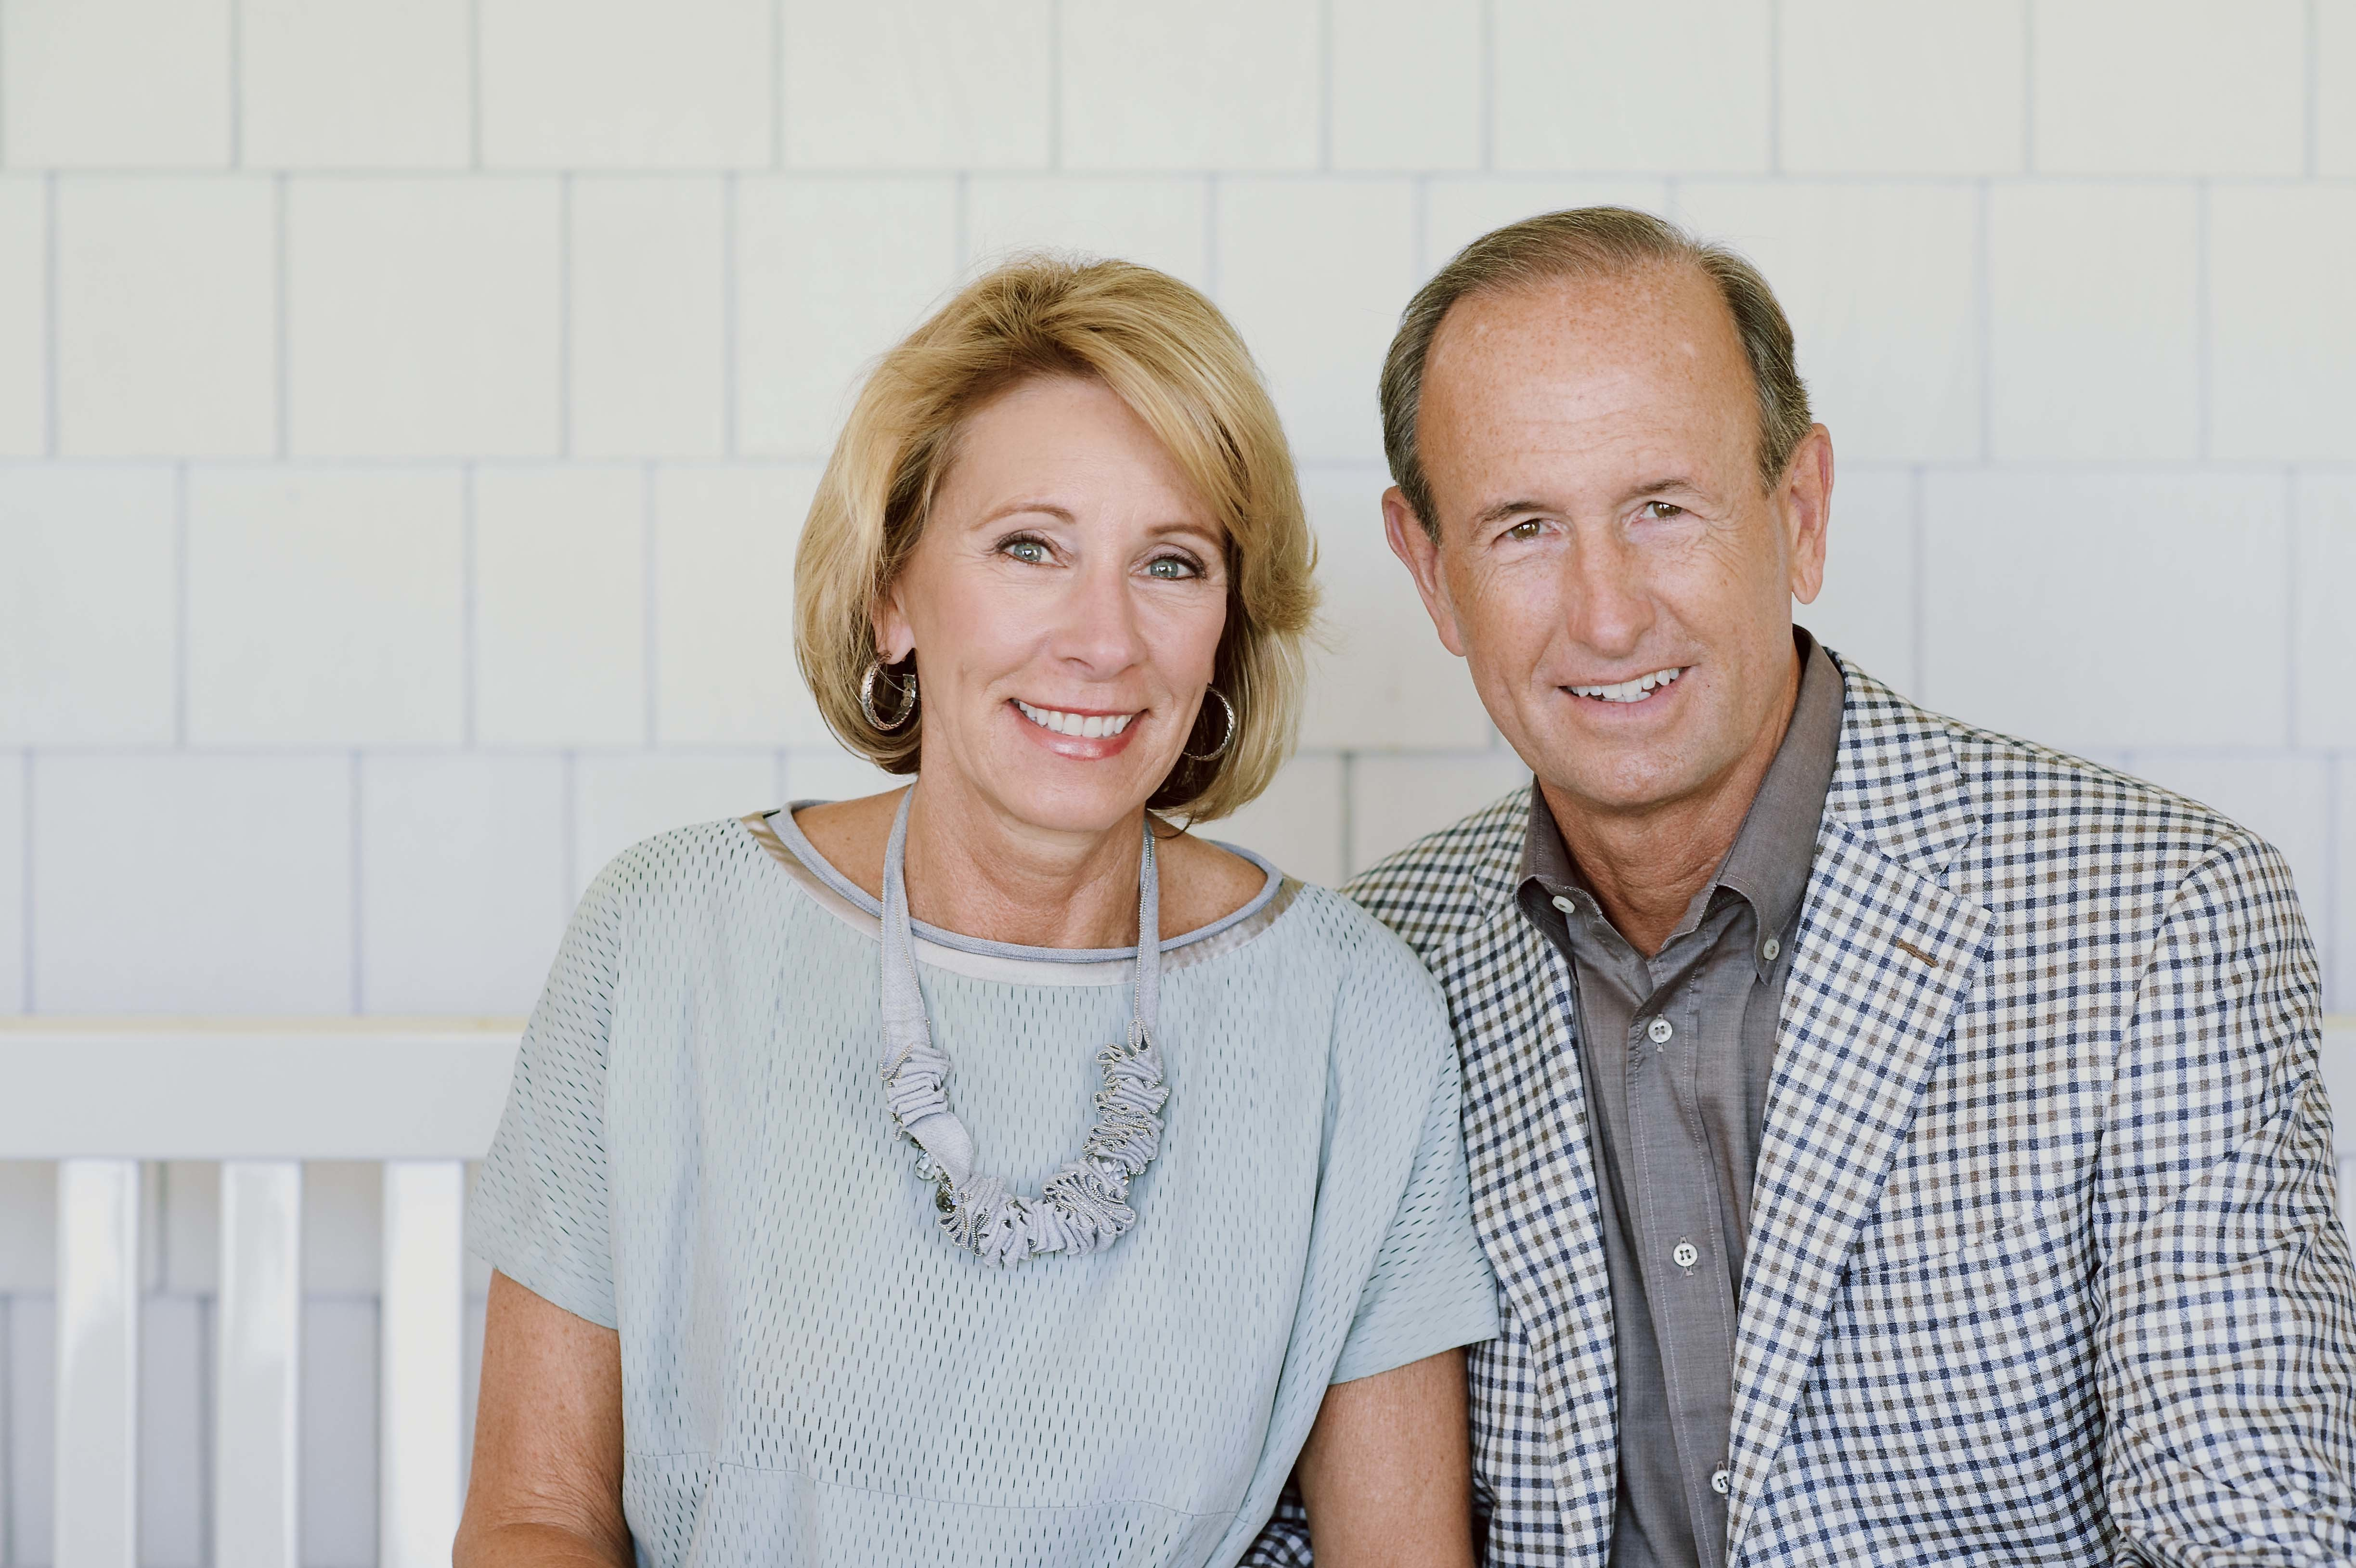 Dick And Betsy De Vos Together